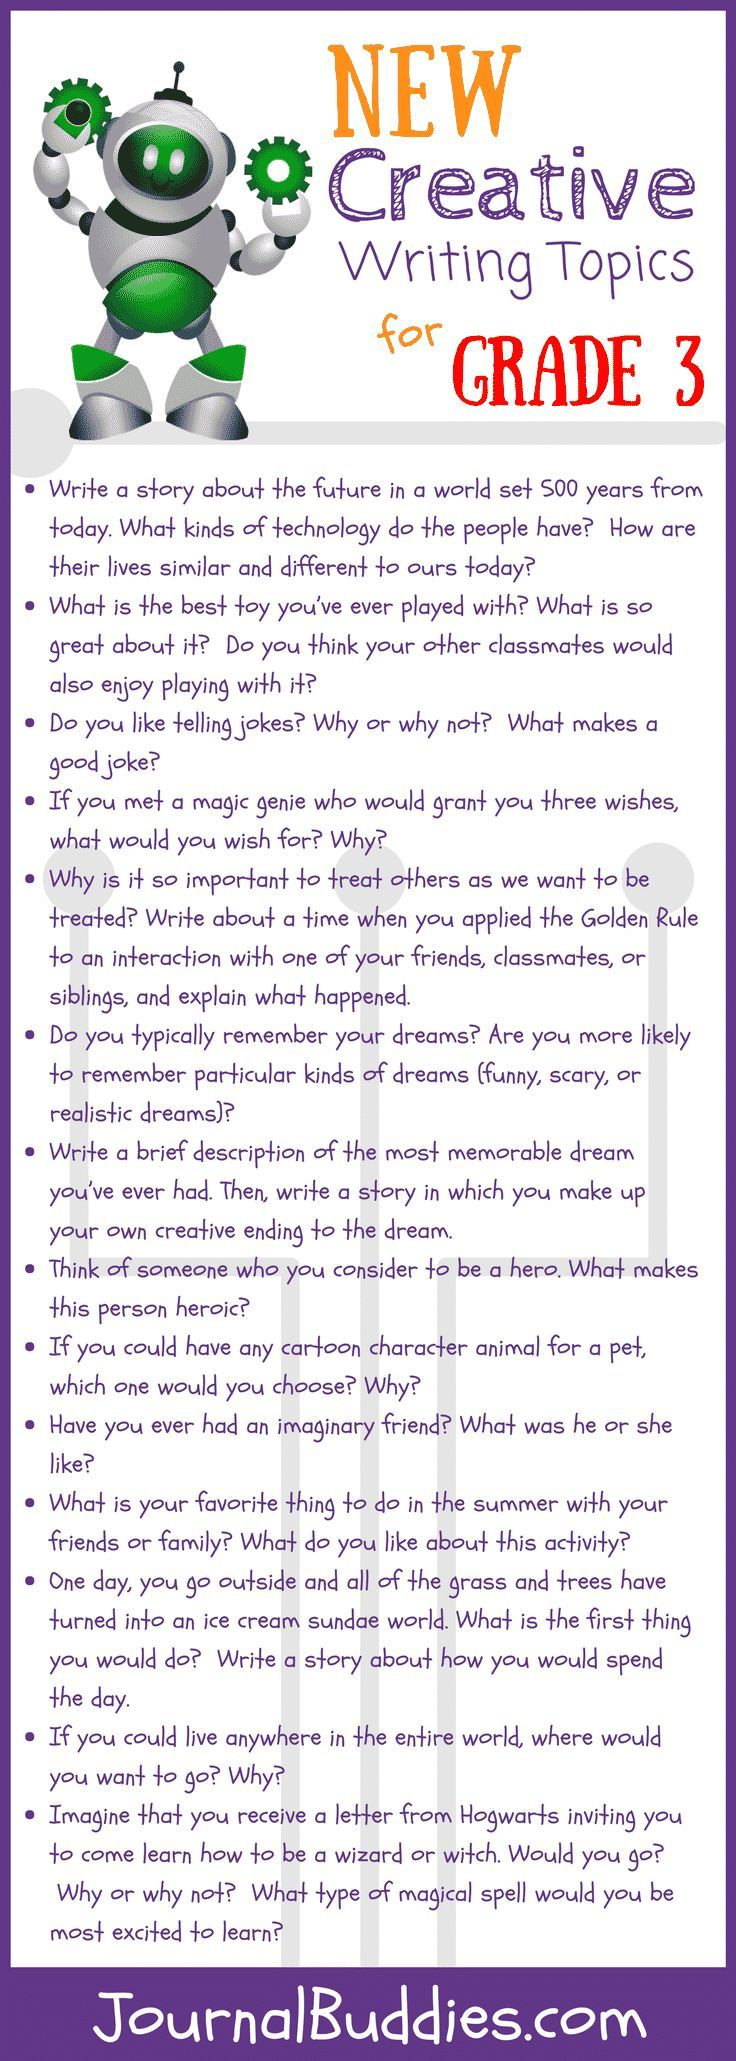 Creative Writing Topics For Third Graders Creative Writing Topics Writing Topics Creative Writing For Kids Creative writing prompts for third